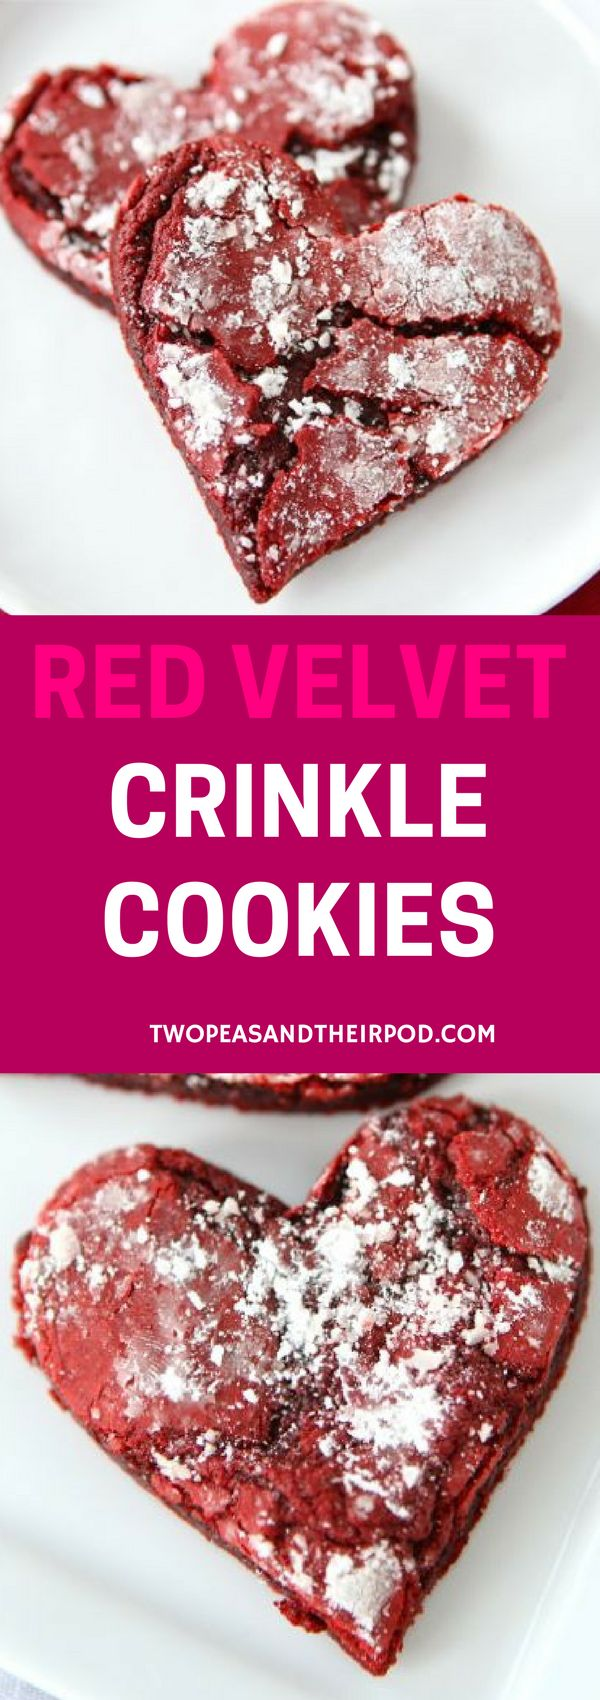 Red Velvet Crinkle Cookies cut into heart shapes for Valentine's Day. Your sweetheart will love these festive cookies. For more easy and delicious dessert recipes, check us out @twopeasandpod #desserts #sweettooth #easyrecipe